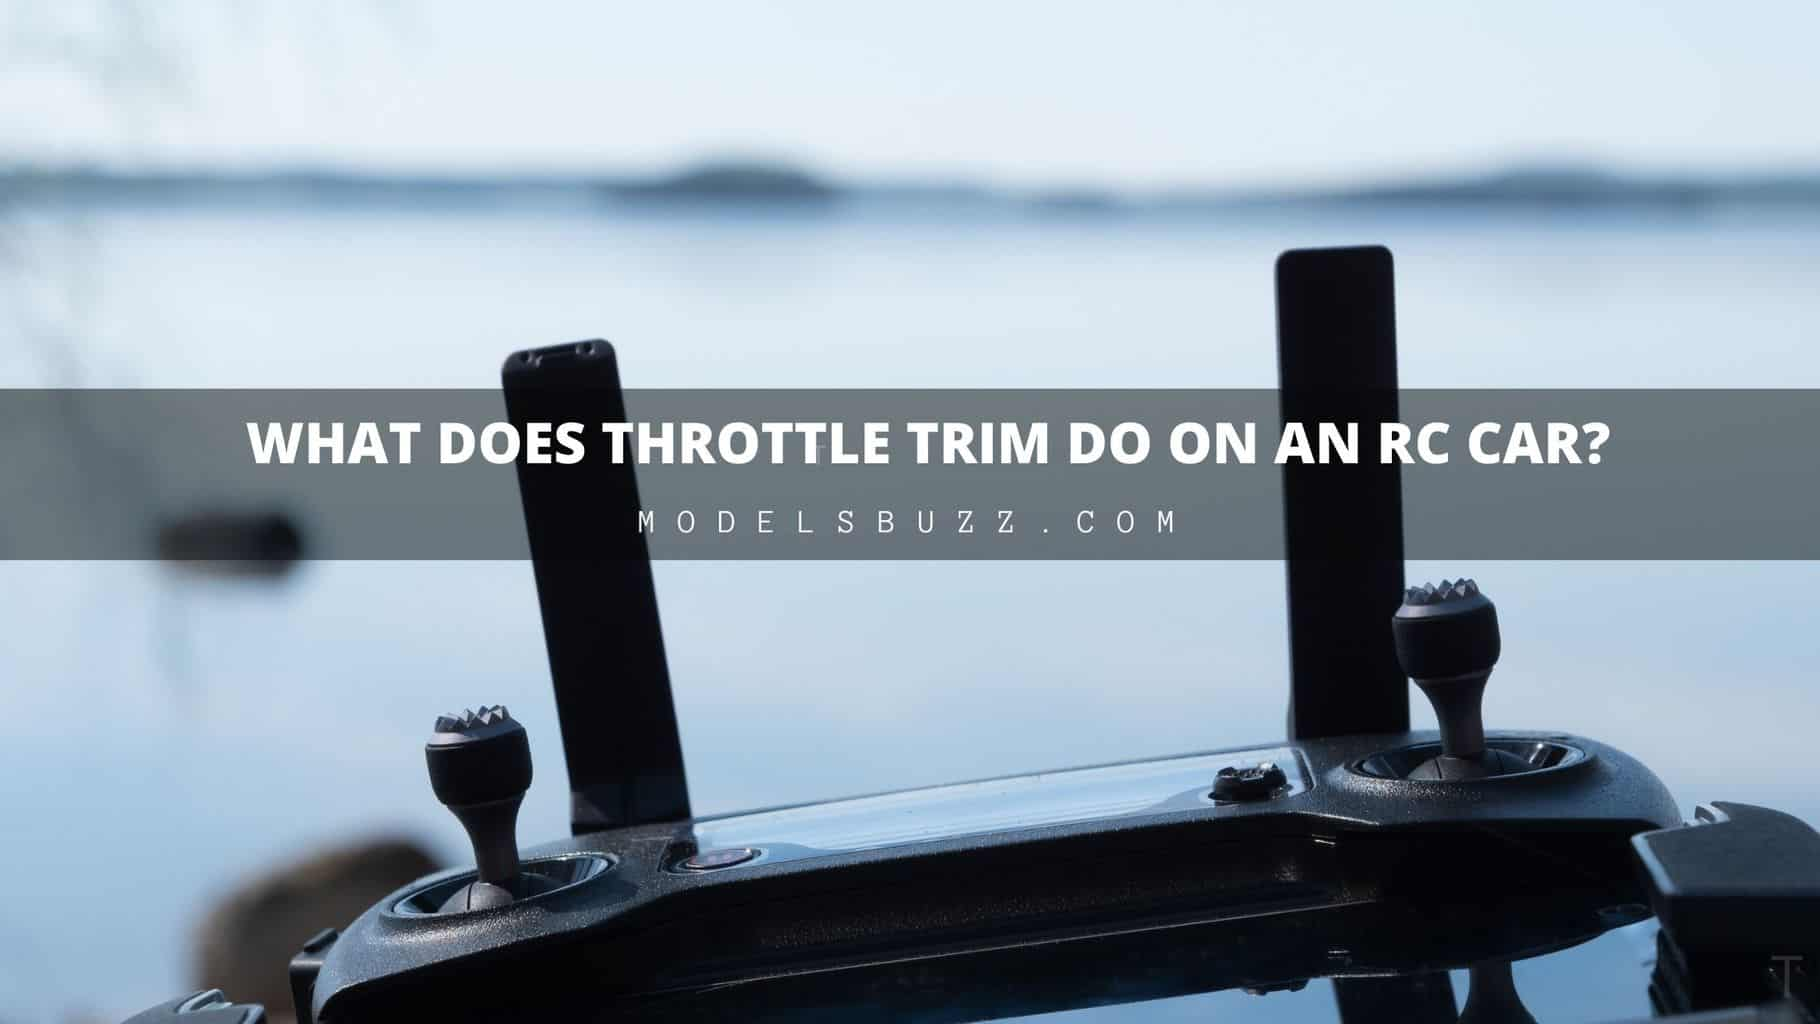 What Does Throttle Trim Do on an RC Car